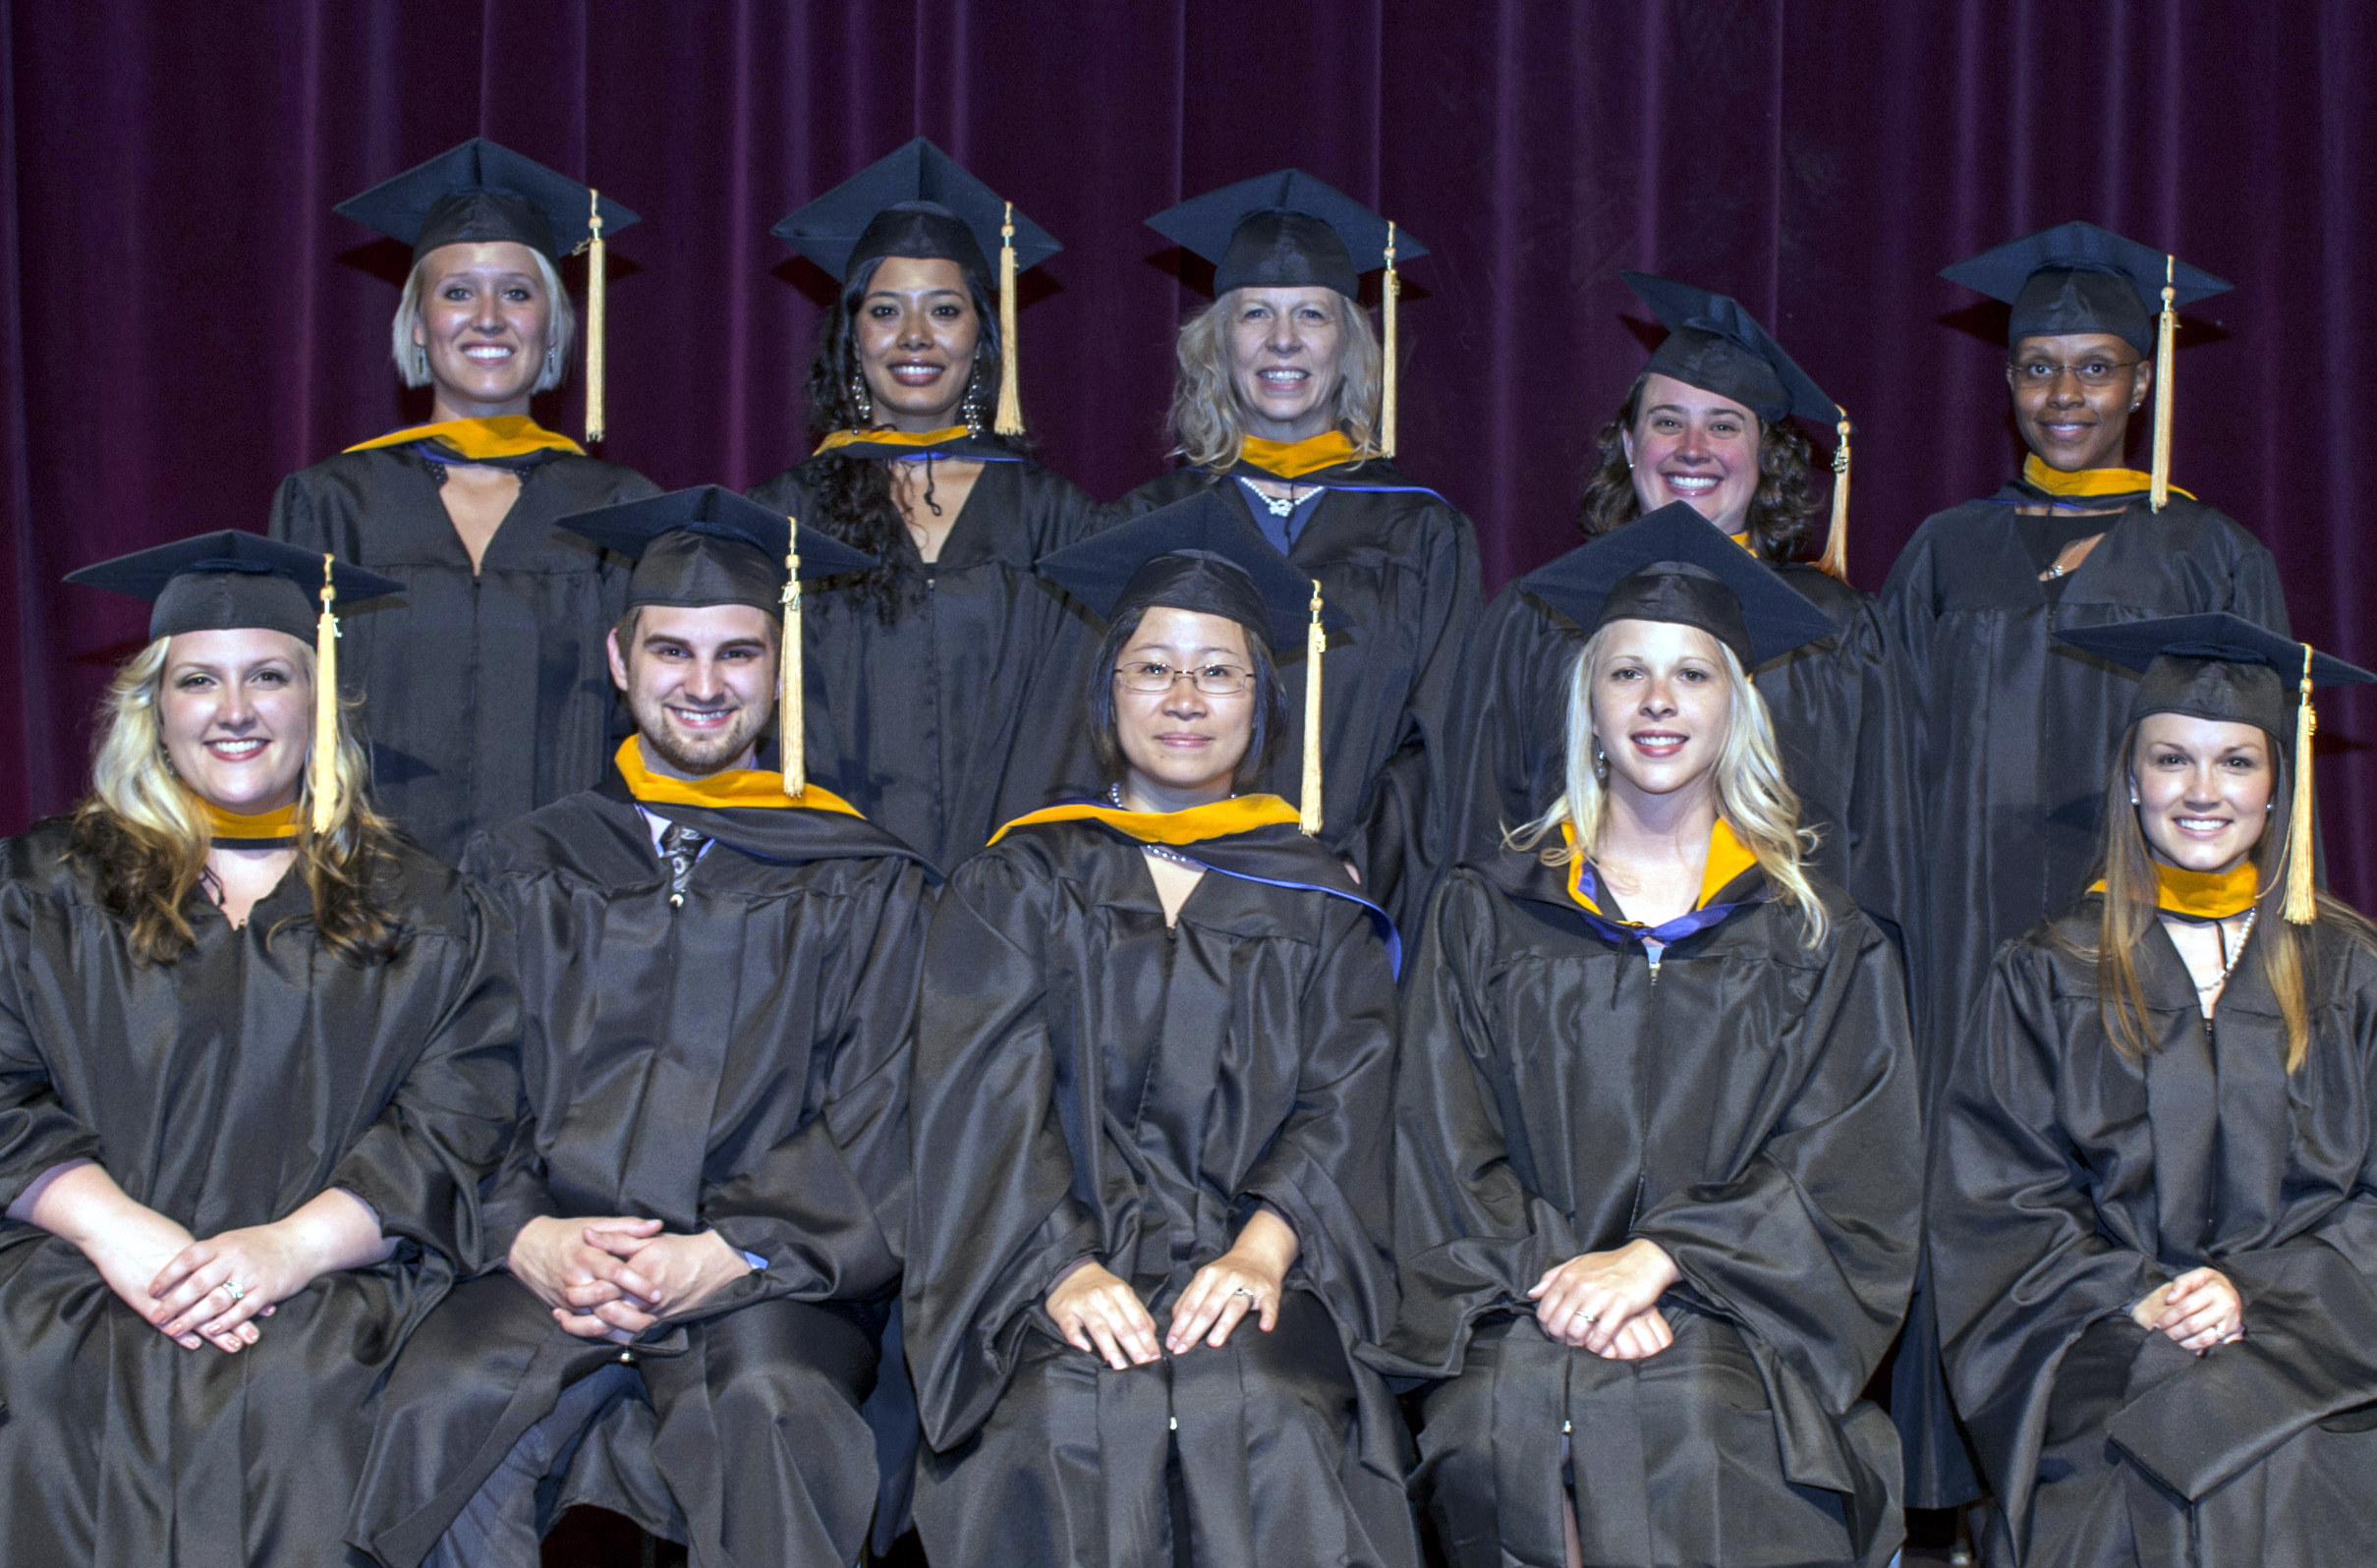 On August 24, Cedarville University celebrated the graduation of its first class from the Master of Science in Nursing program. Photo credit: Scott L. Huck/Cedarville University